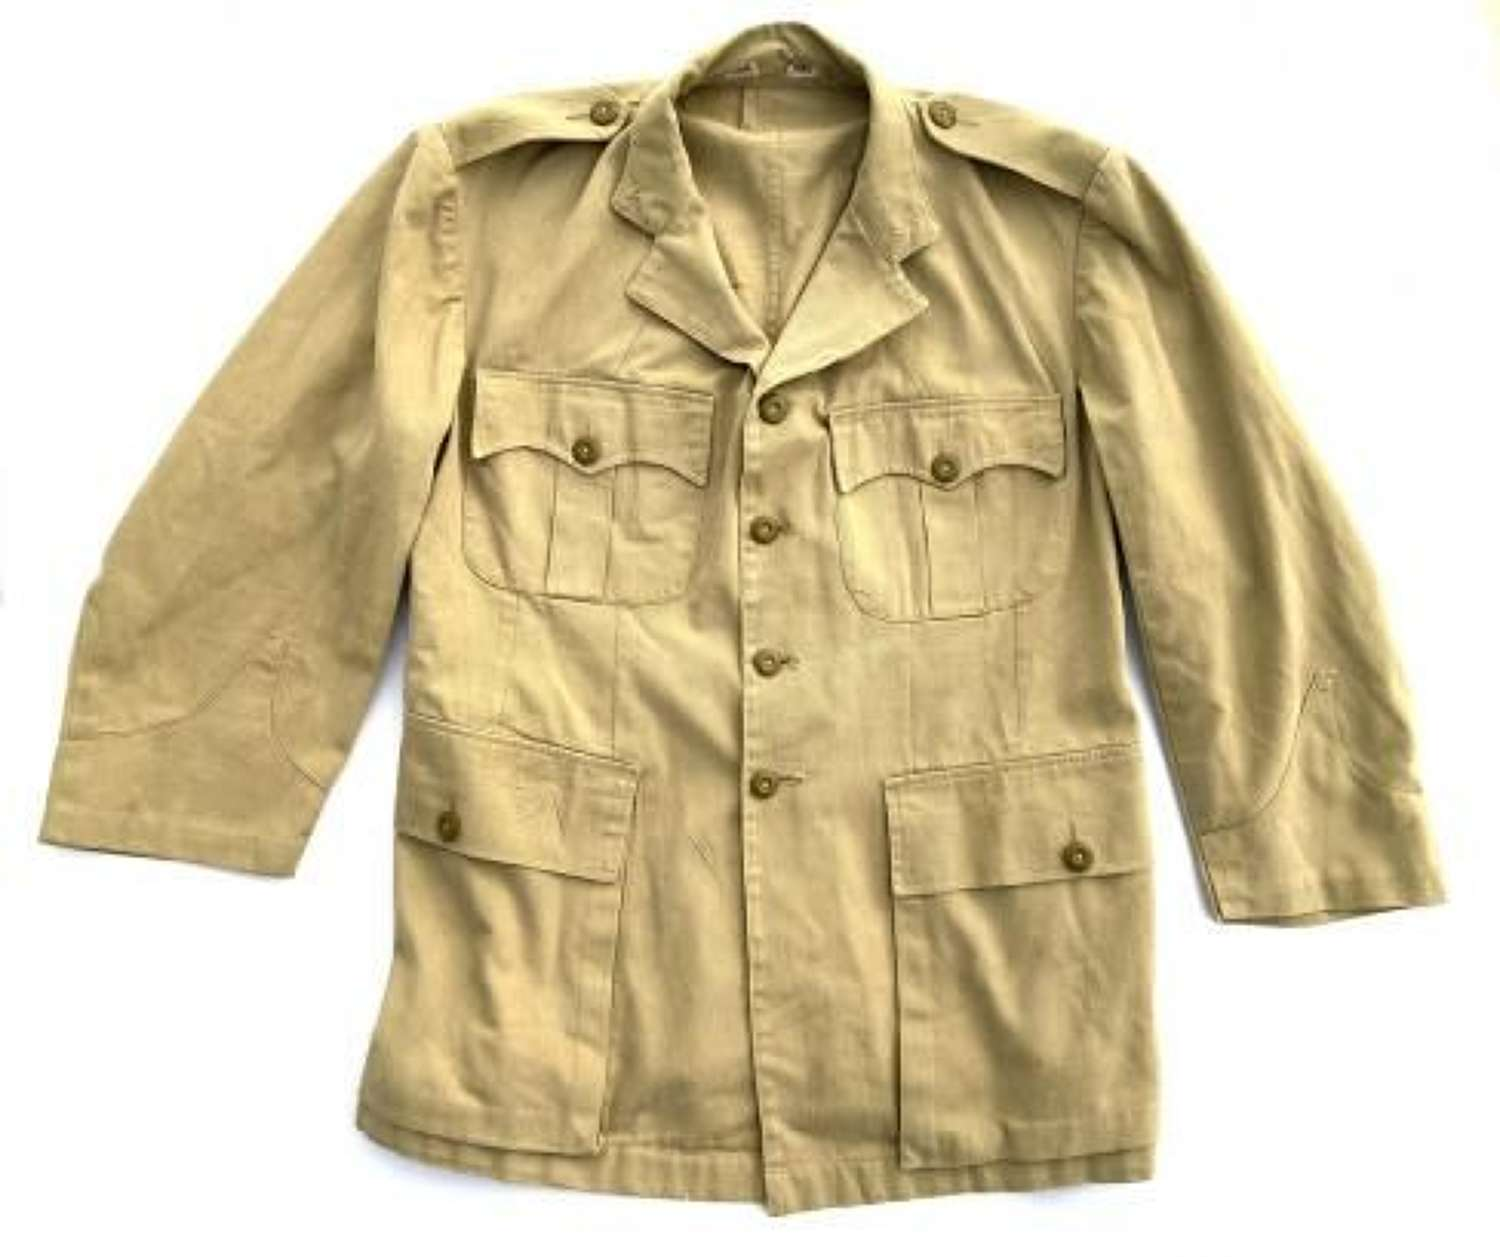 Original 1940s British Officers Khaki Drill Tunic